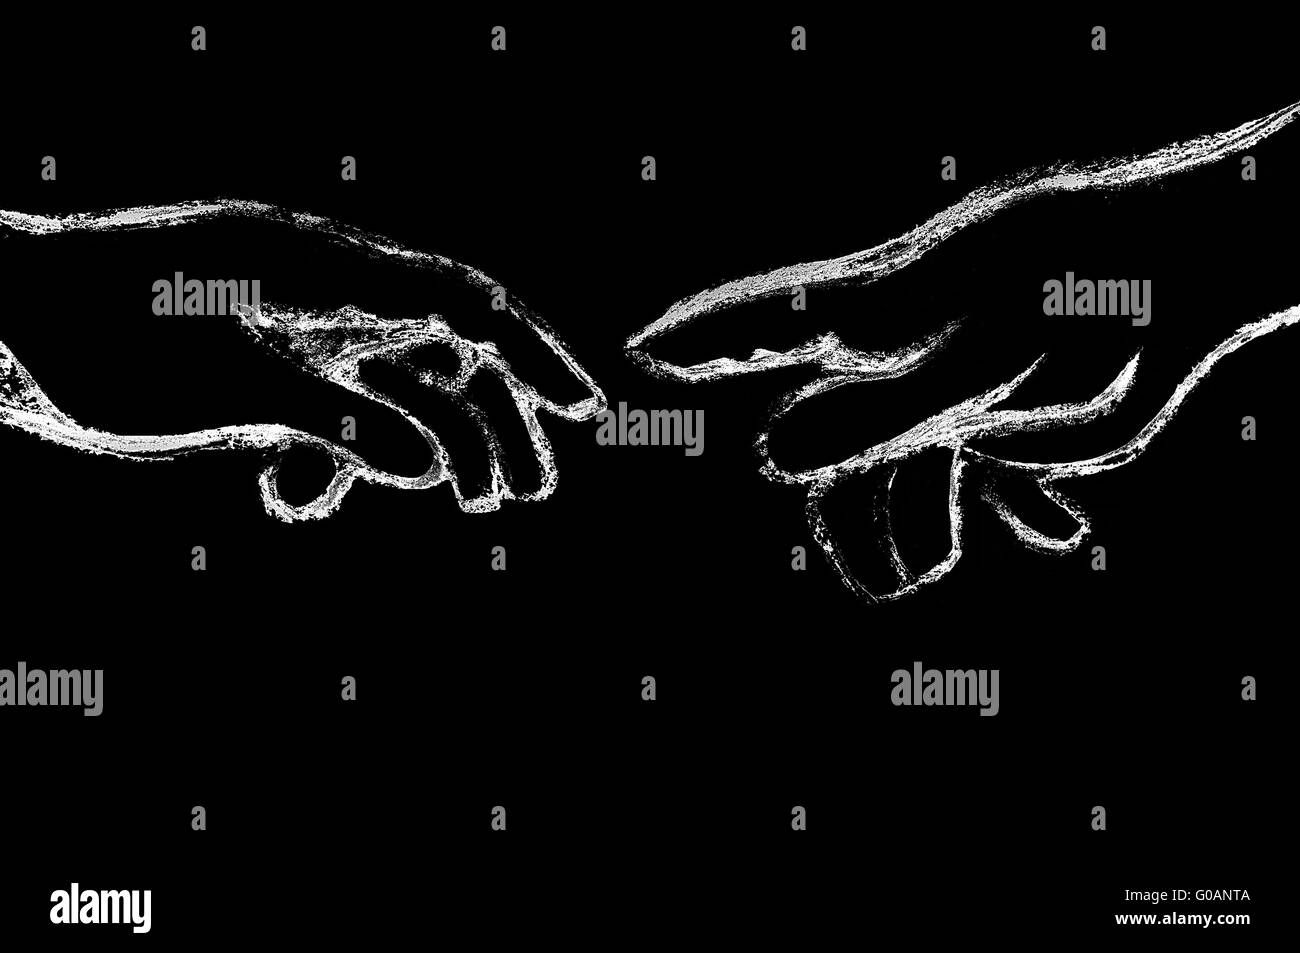 the gesture black background the Creation of Adam Stock Photo